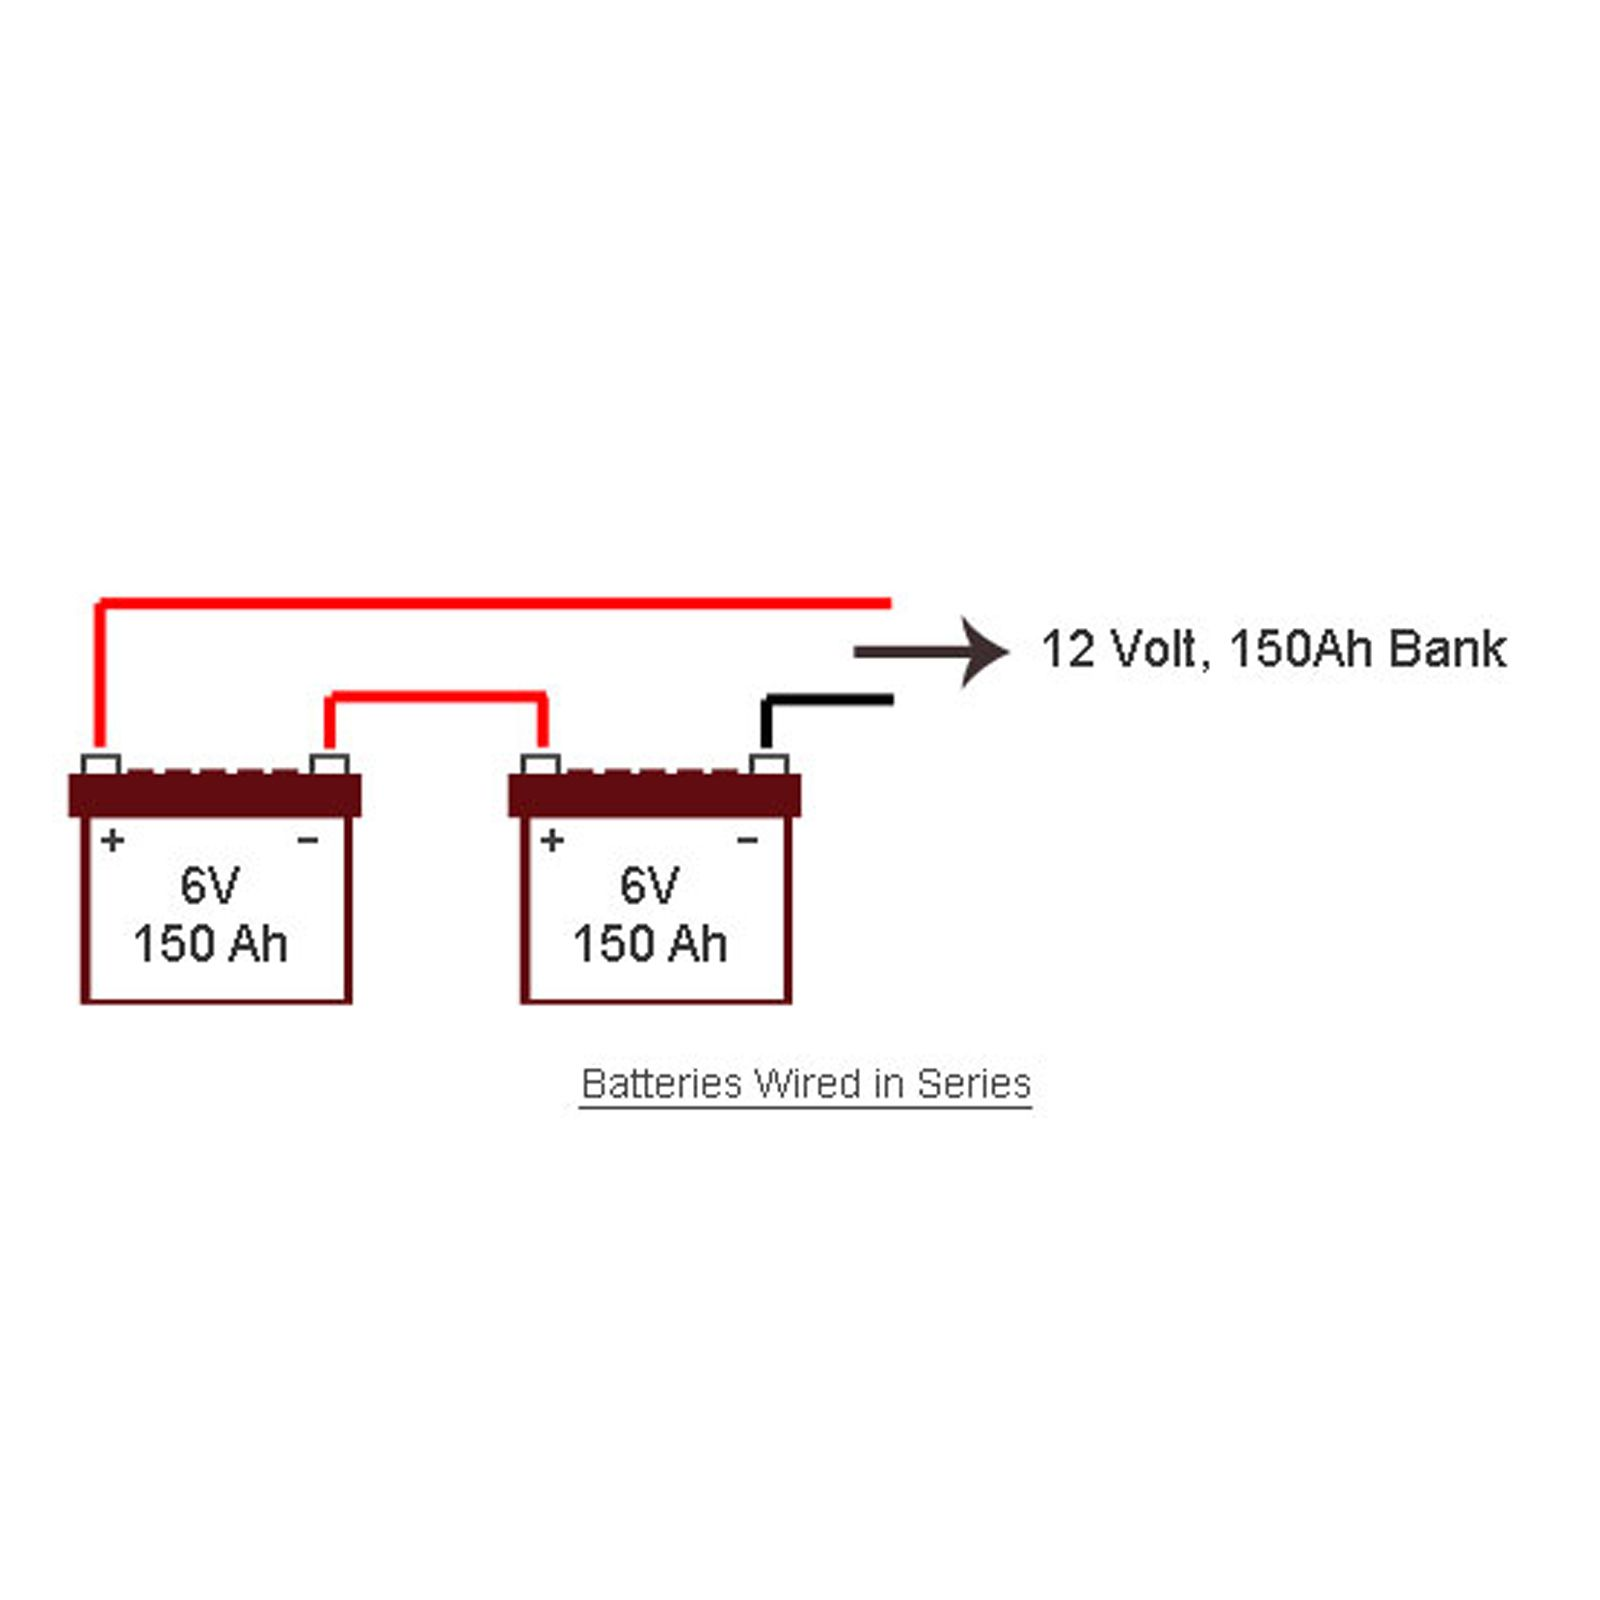 Awesome Series Parallel Battery Wiring Mdni Pinterest In Batteries